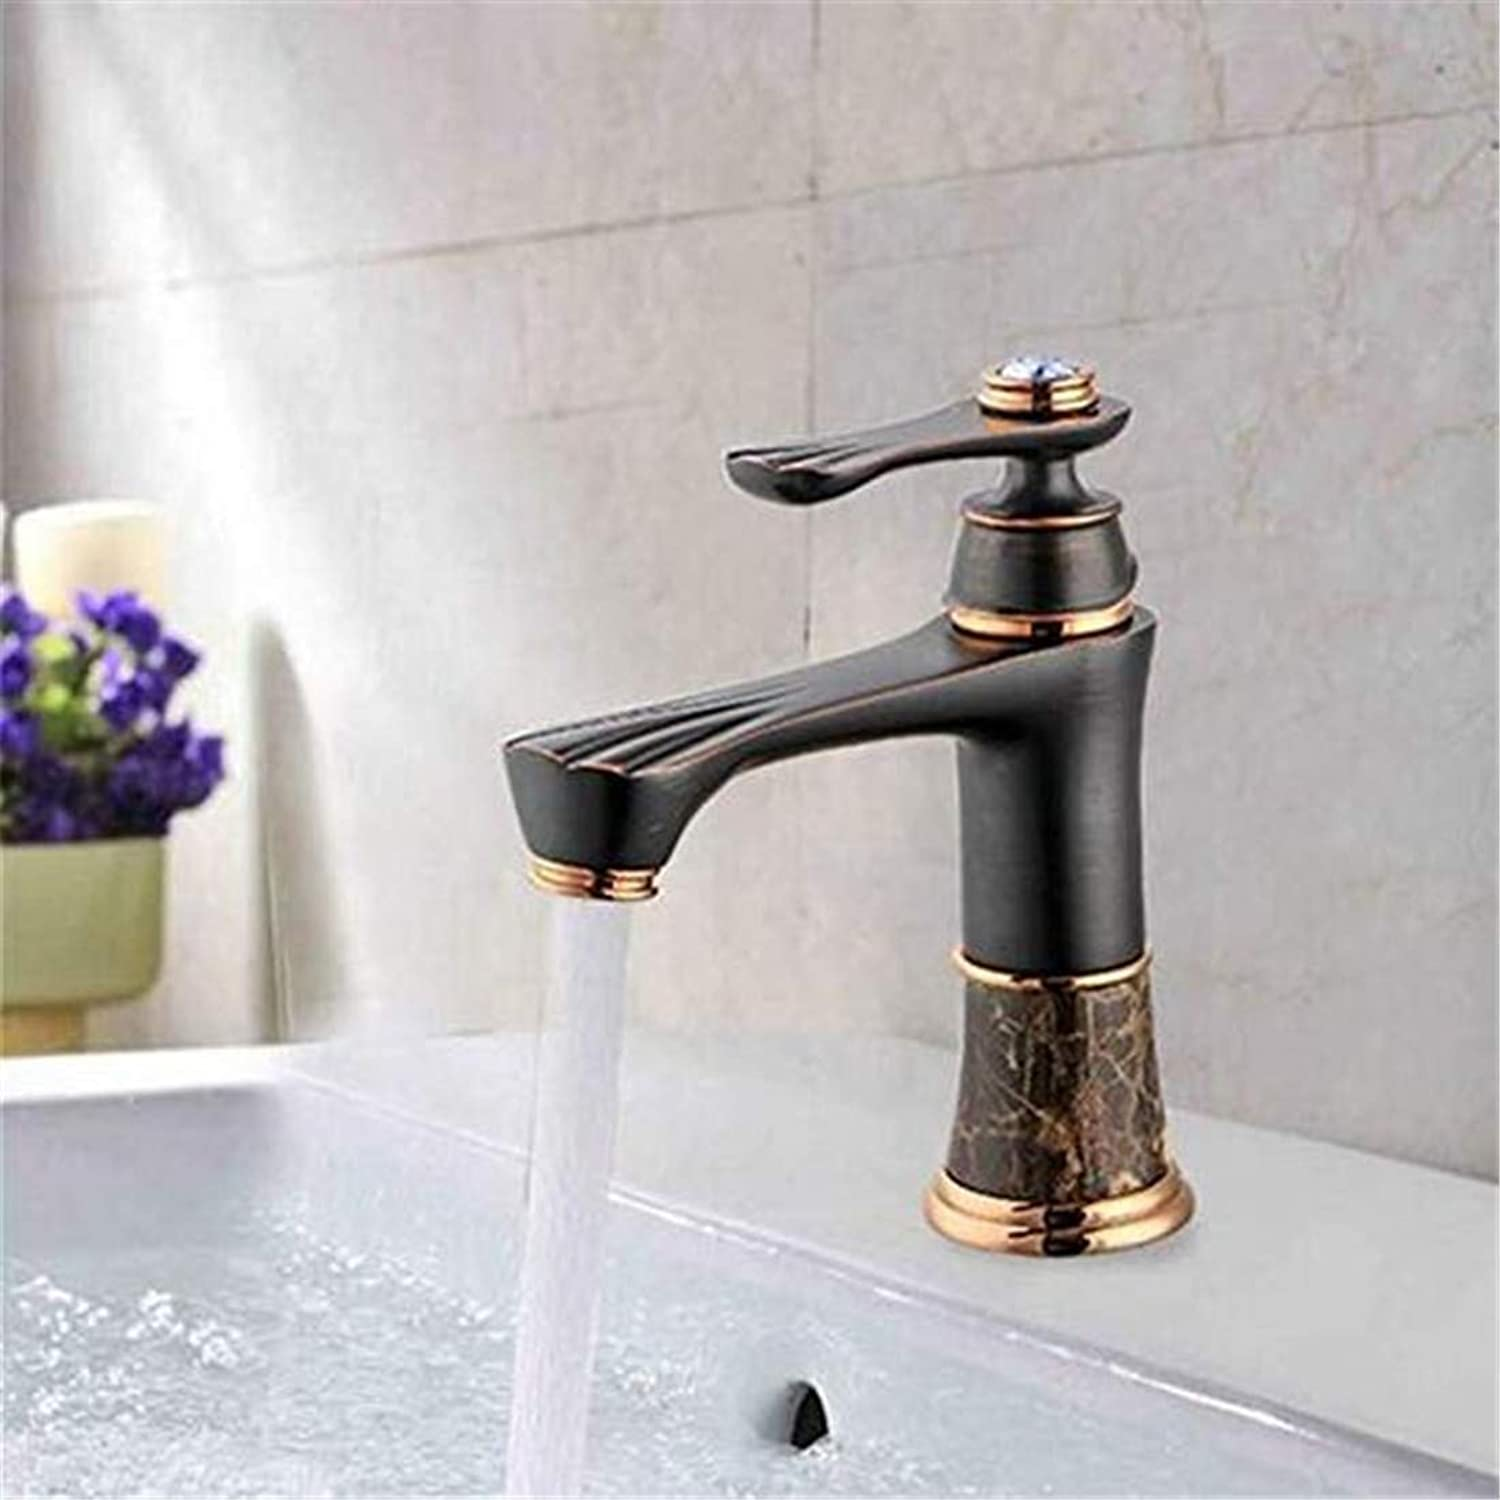 Modern Hot and Cold Vintage Platingfaucets Basin Mixer Single Hole Short Basin Faucet Copper Mixing Faucets